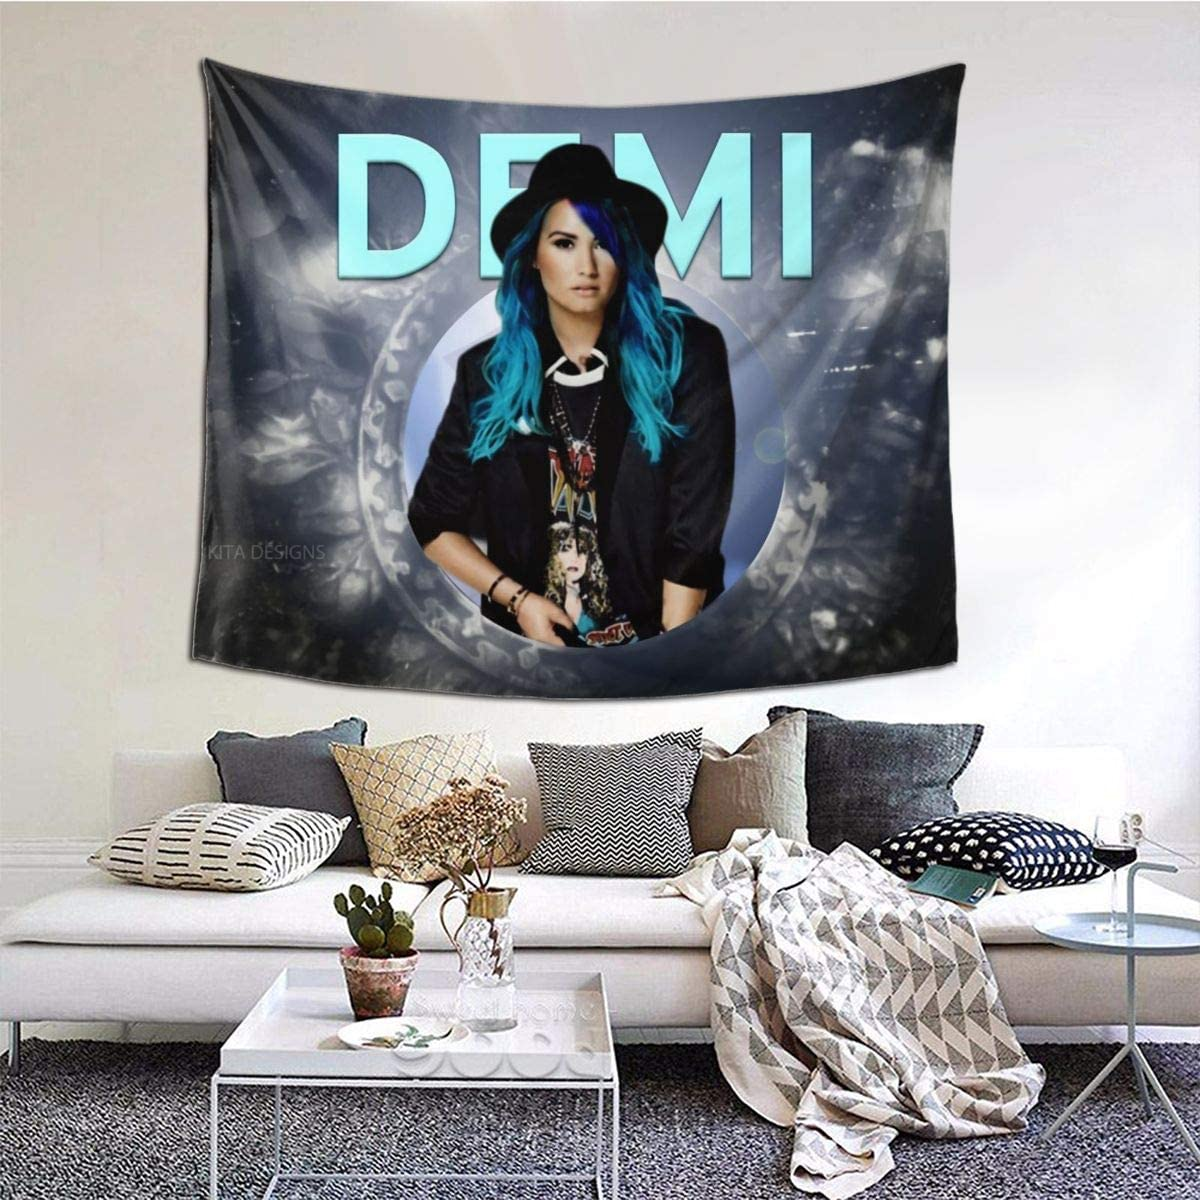 PaulineBeaton Demi Lovato Tapestry Colorful Tapestries Wall Decor Tapestry for Bedroom Living Room Dormitory, Window Curtain Picnic Mat,60×51 Inches